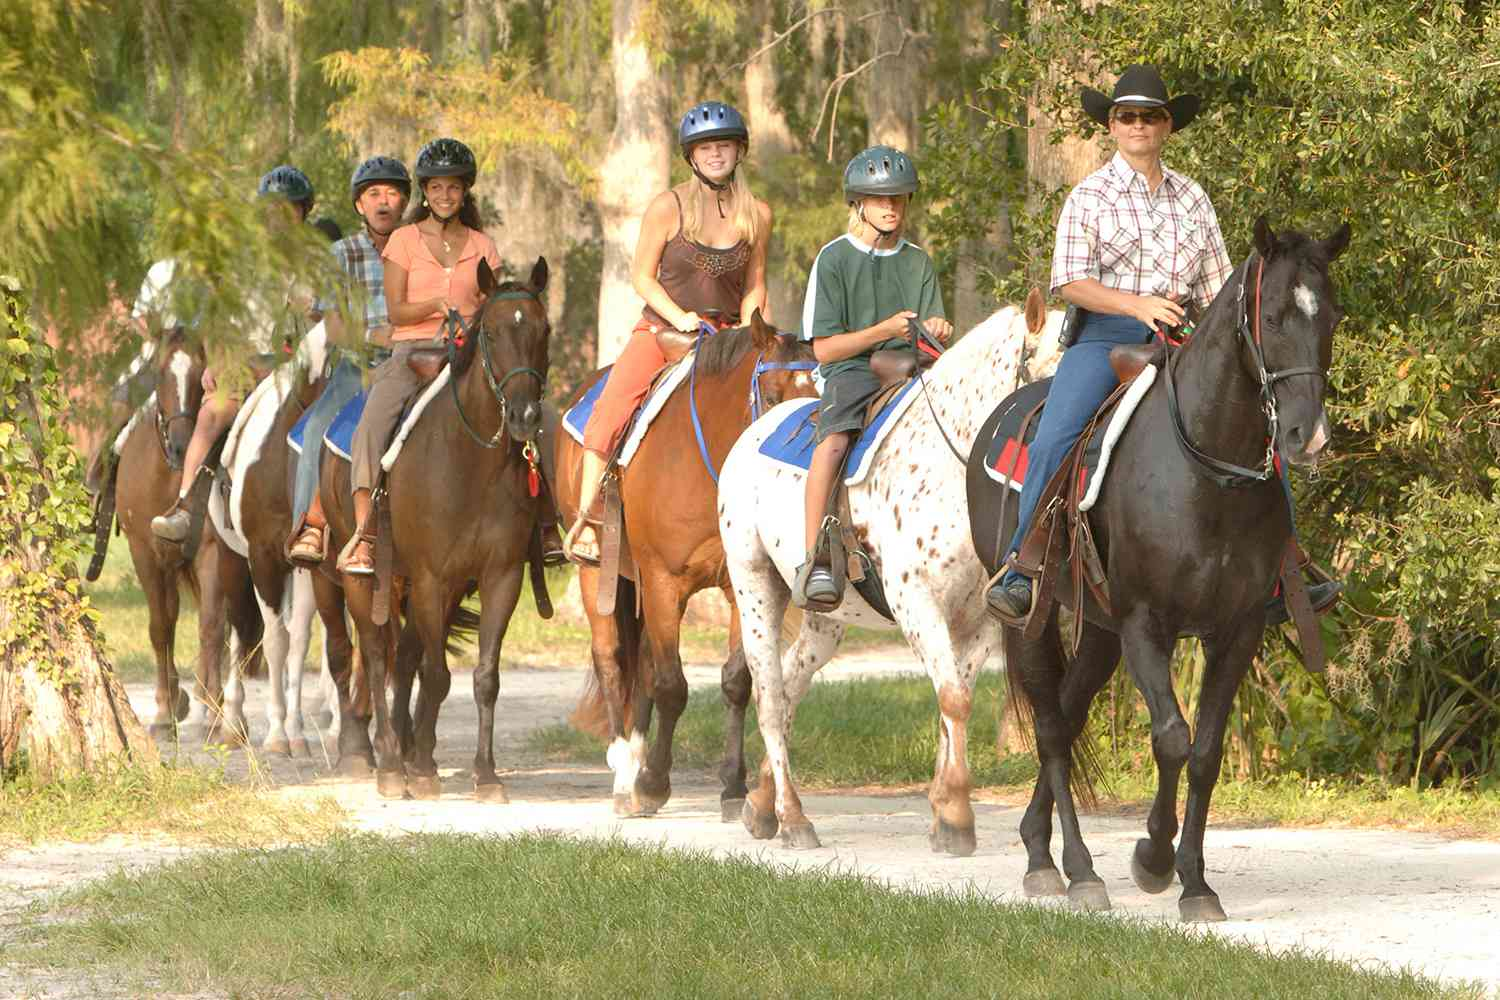 Guests horseback riding at Fort Wilderness Resort and Campground